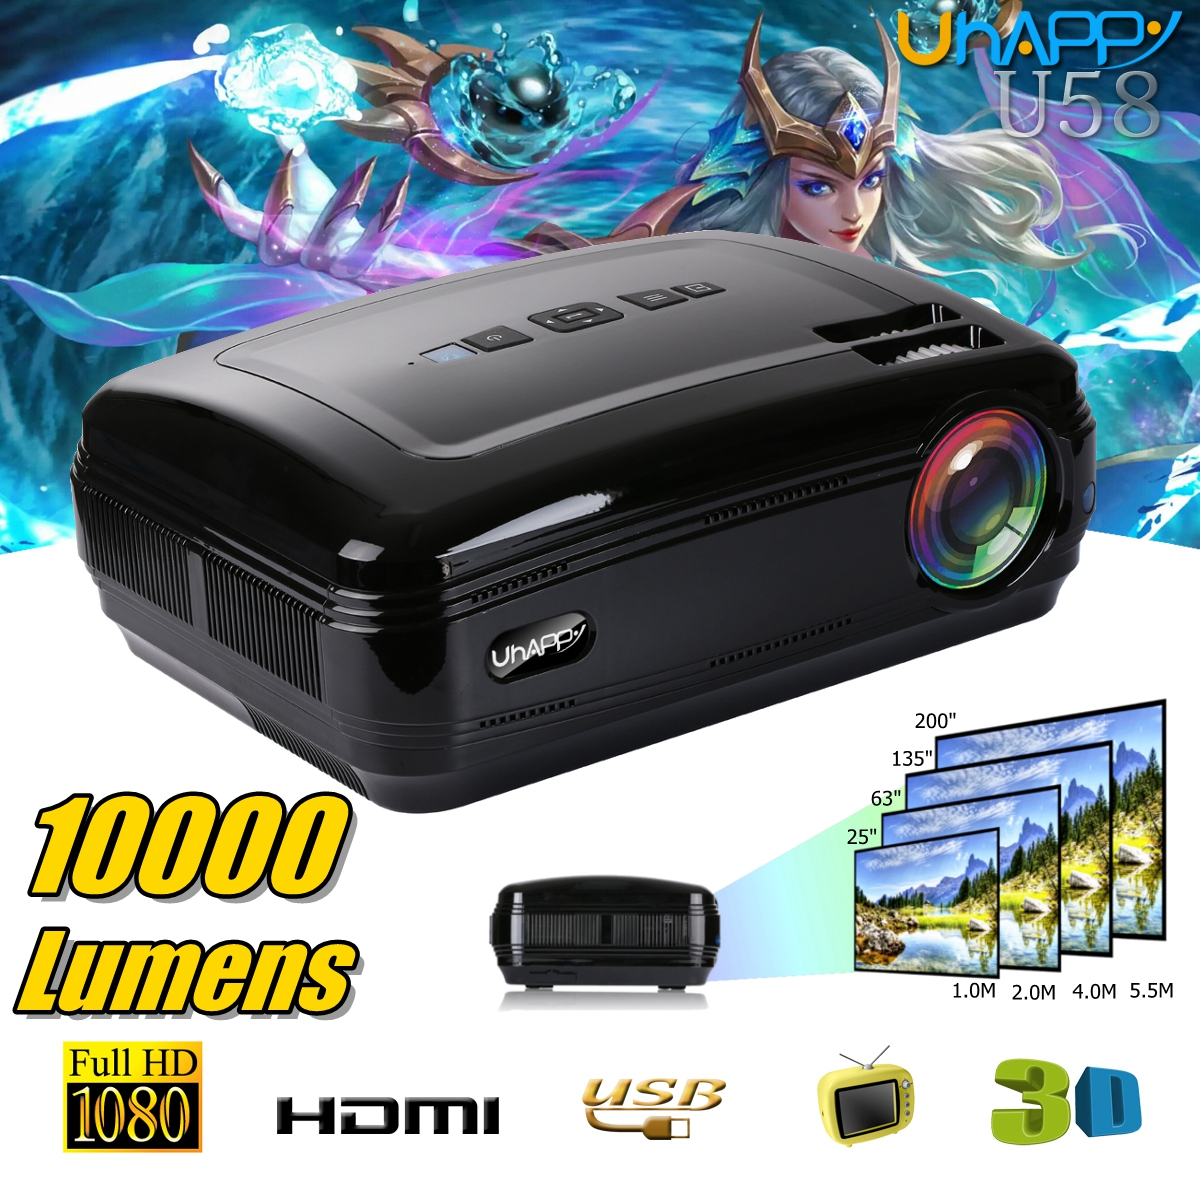 Tv Tuner Projector High Definition Home Theater Wxga Full: 10000 Lumens 1080P 3D LED Home Cinema Theater Projector